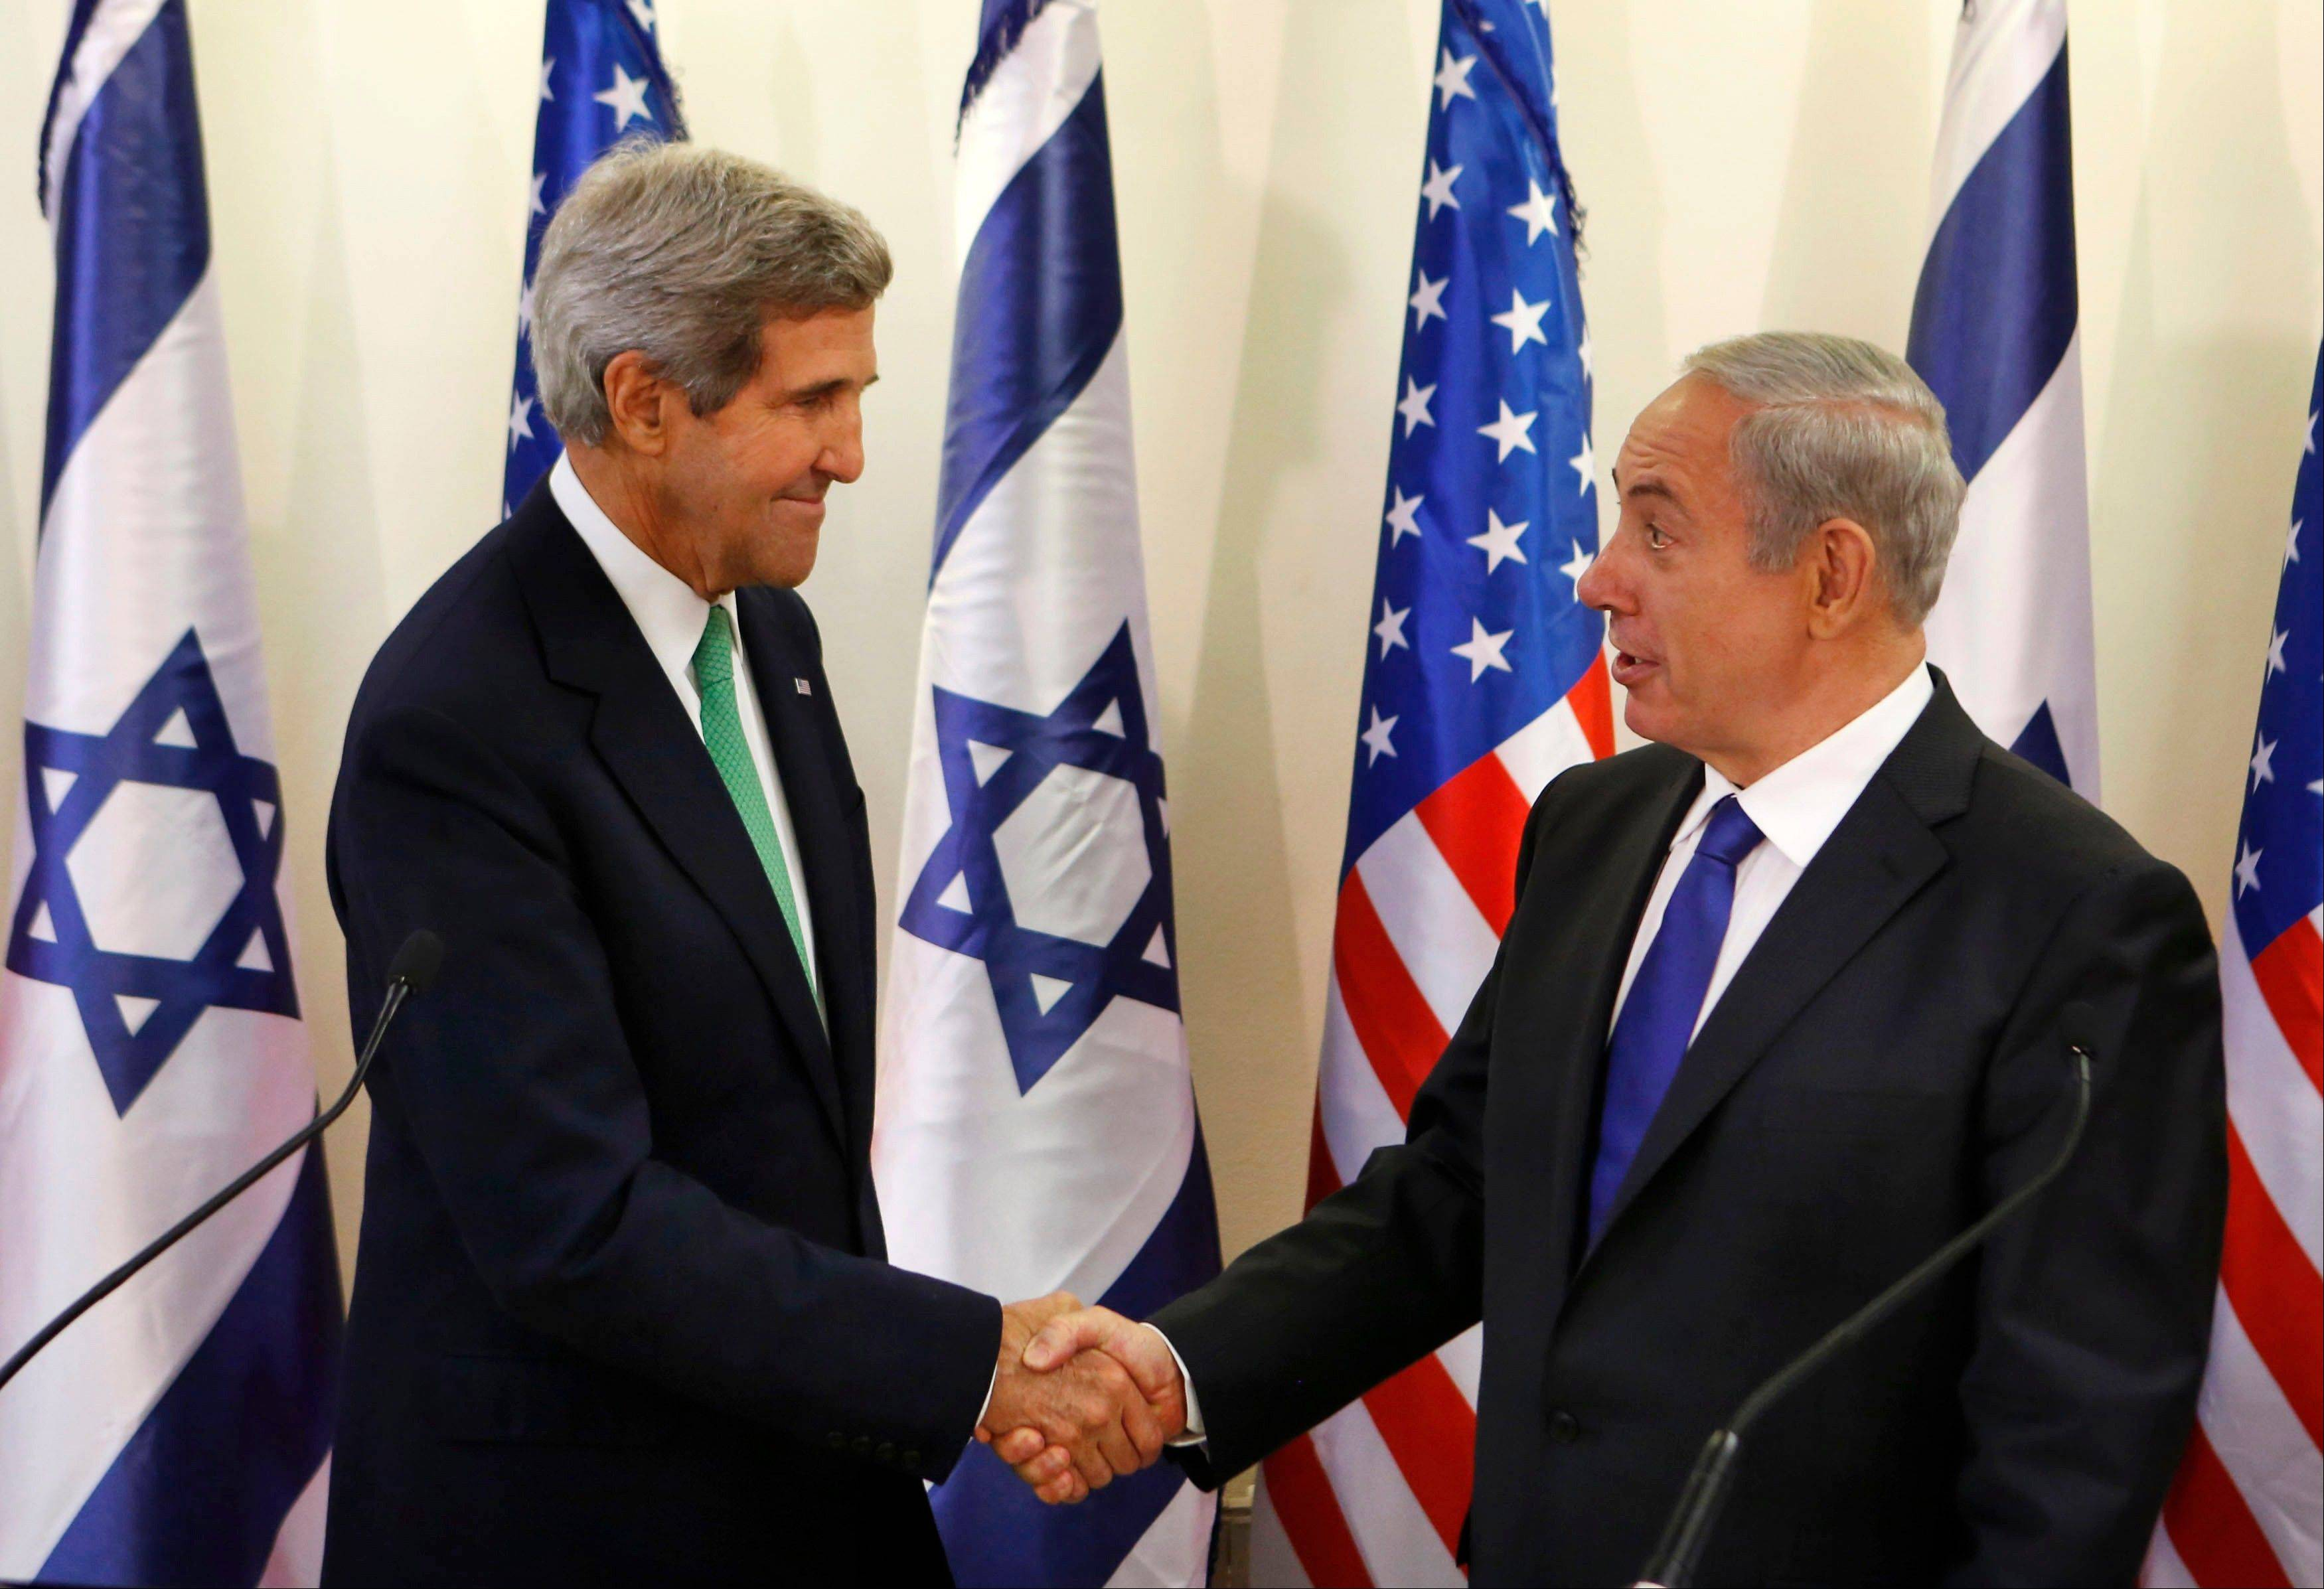 Secretary of State John Kerry, left, shakes hands with Israel�s Prime Minister Benjamin Netanyahu at the prime minister�s office in Jerusalem Sunday. Kerry on Sunday sent a strong warning to Syria, saying �the threat of force is real� if it does not carry out an internationally brokered agreement to hand over its chemical weapons.